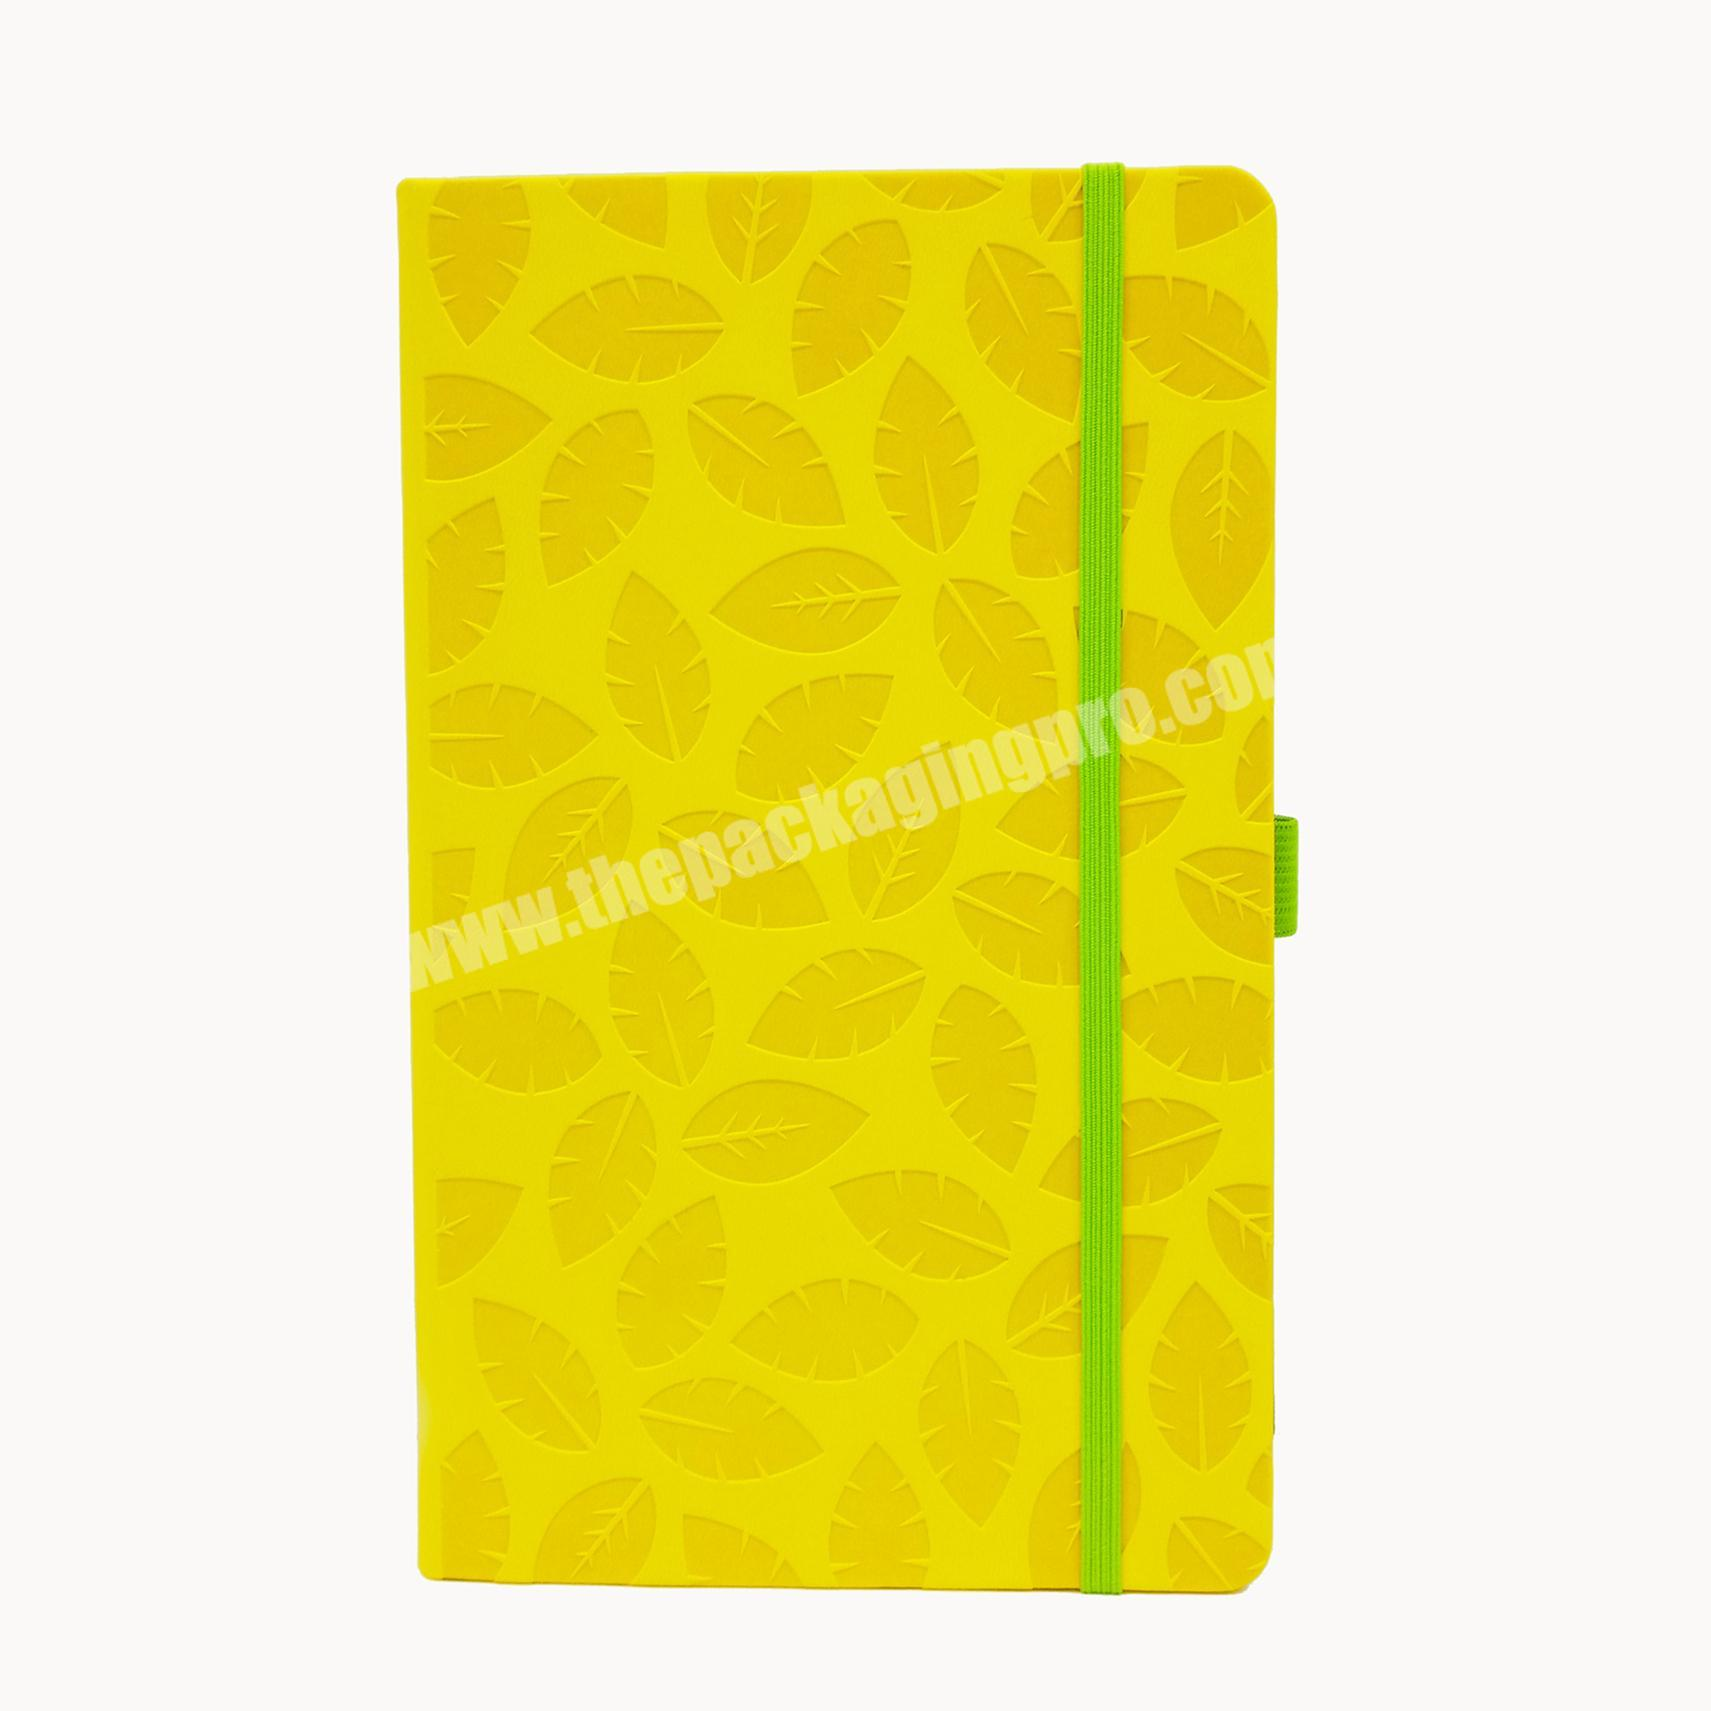 High quality lifestyle planner personal diary promotional notebook leather cover journal